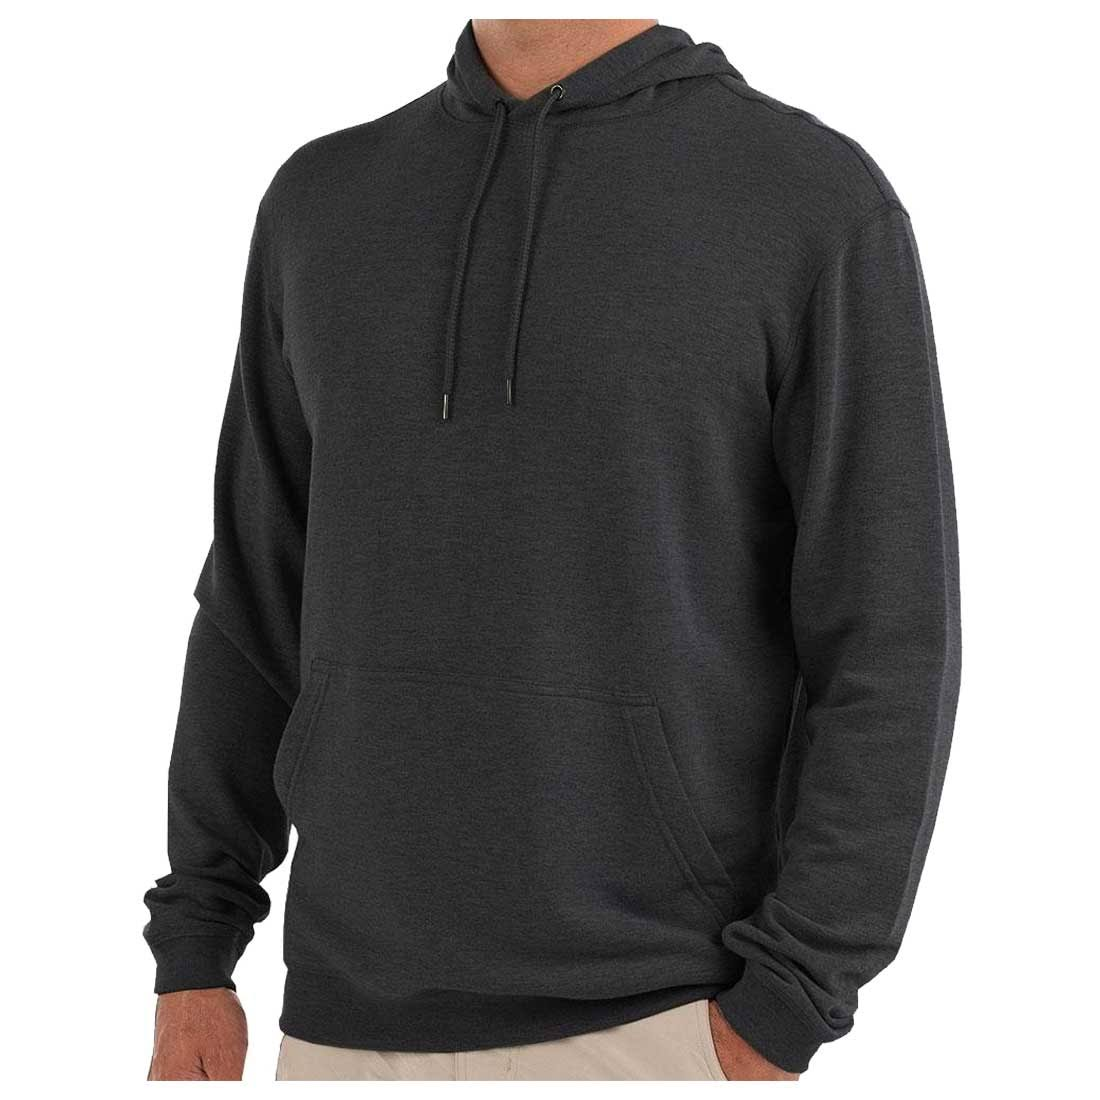 Free Fly Bamboo Fleece Pullover Hoody - Men's